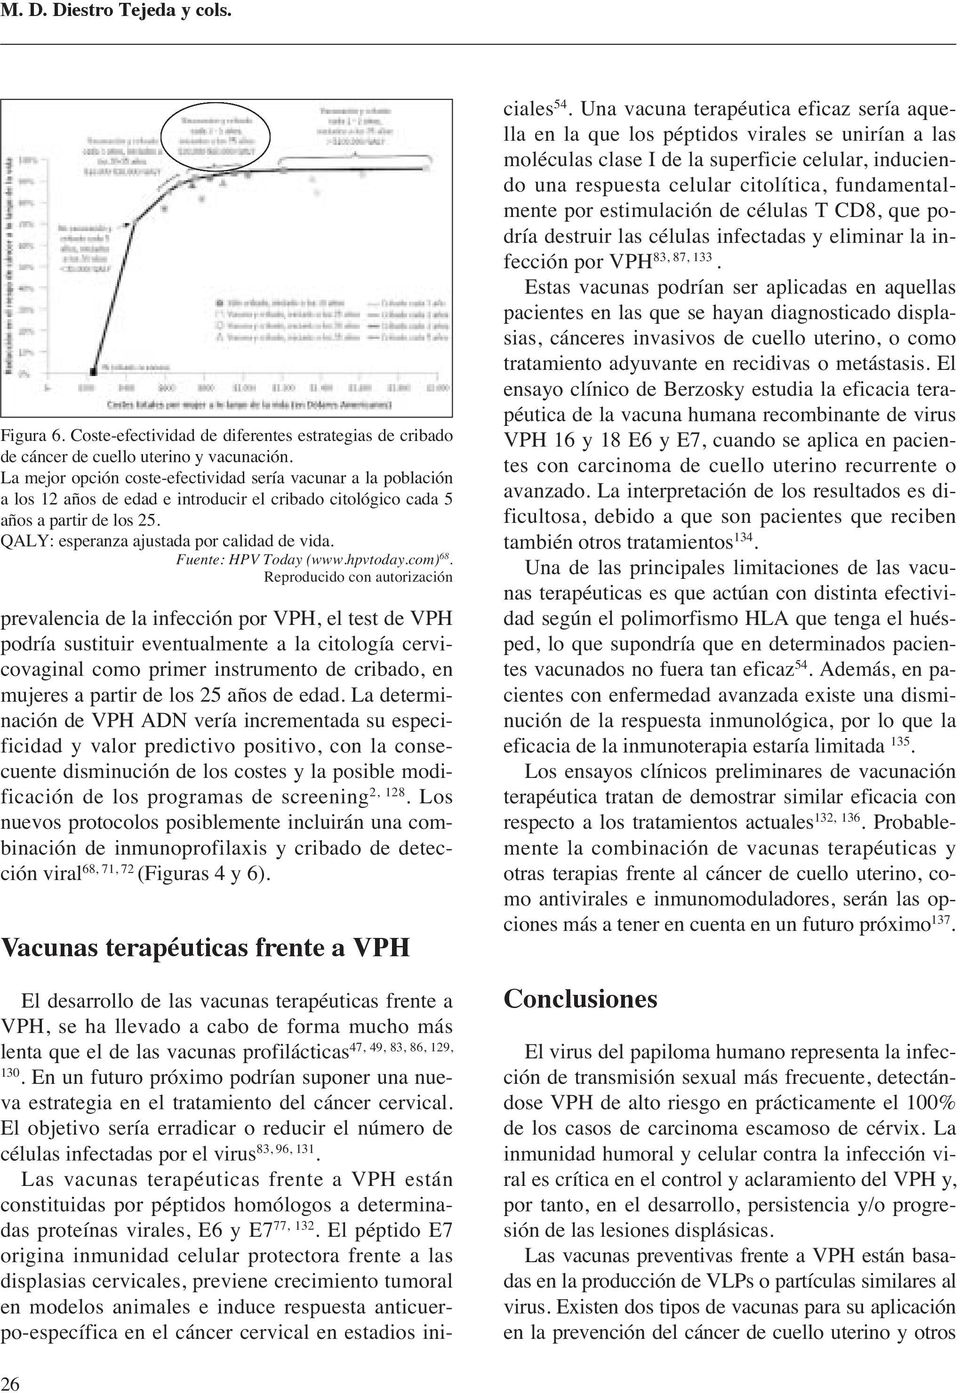 Fuente: HPV Today (www.hpvtoday.com) 68.